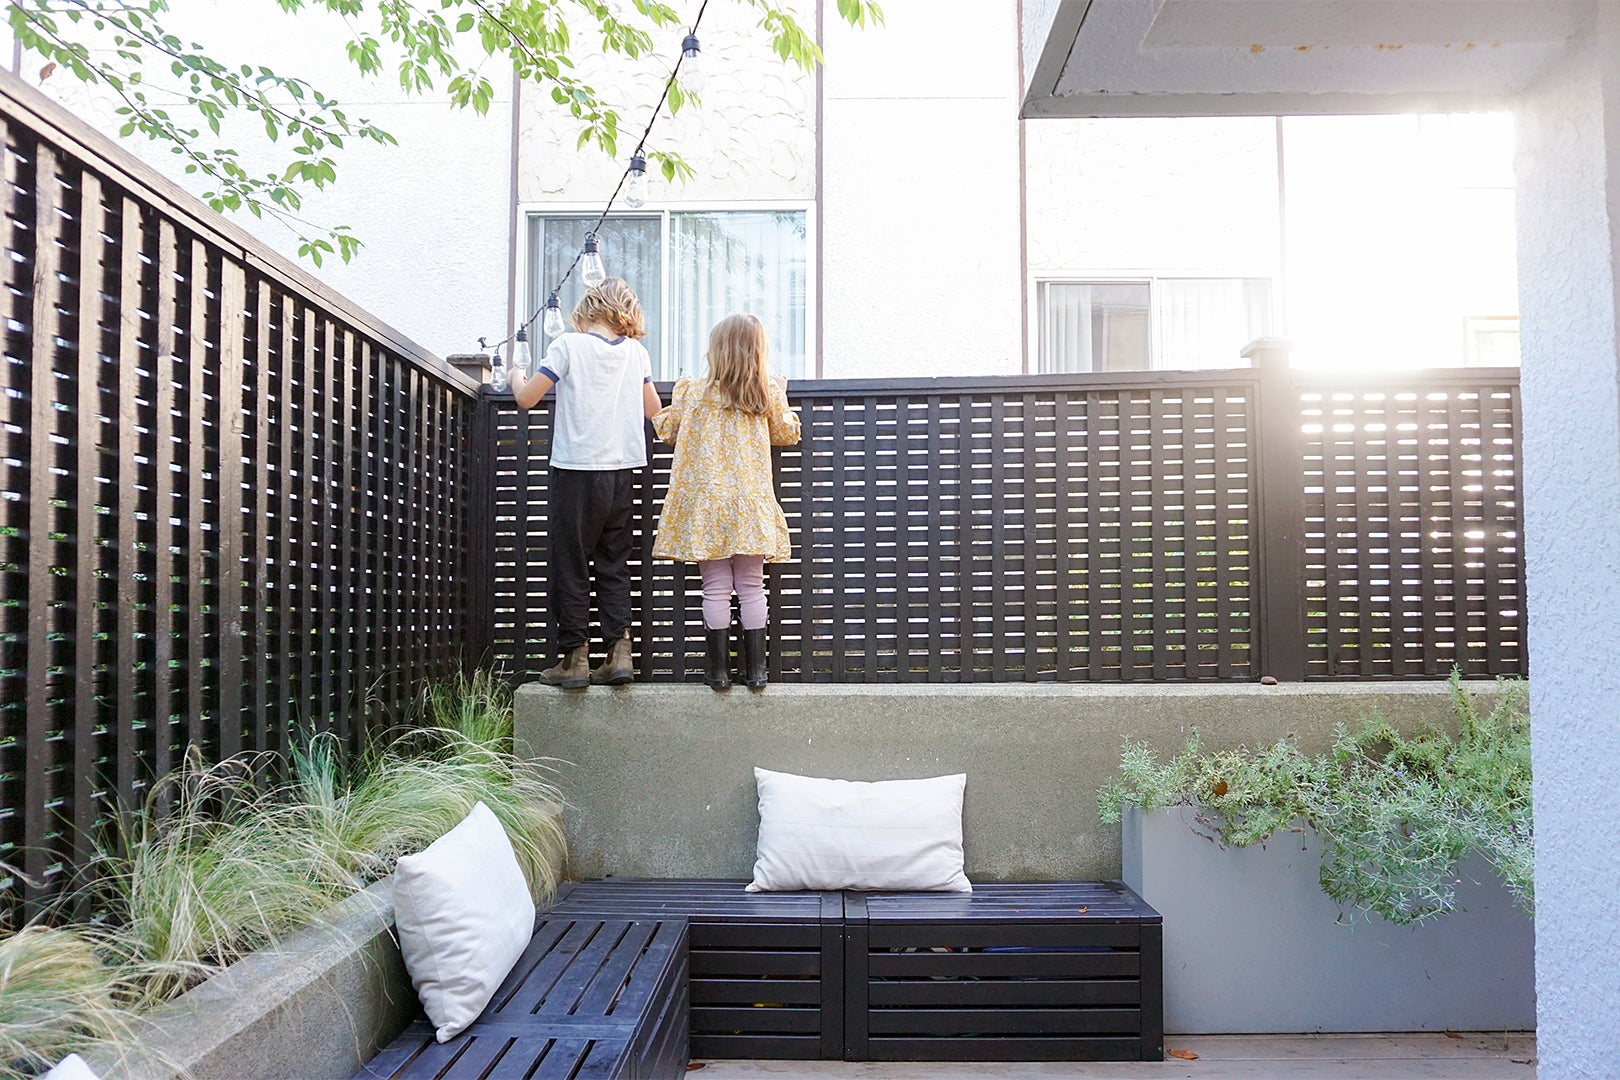 How a Vancouver Family of 4 Functions in a 900-Square-Foot, One-Bedroom Condo